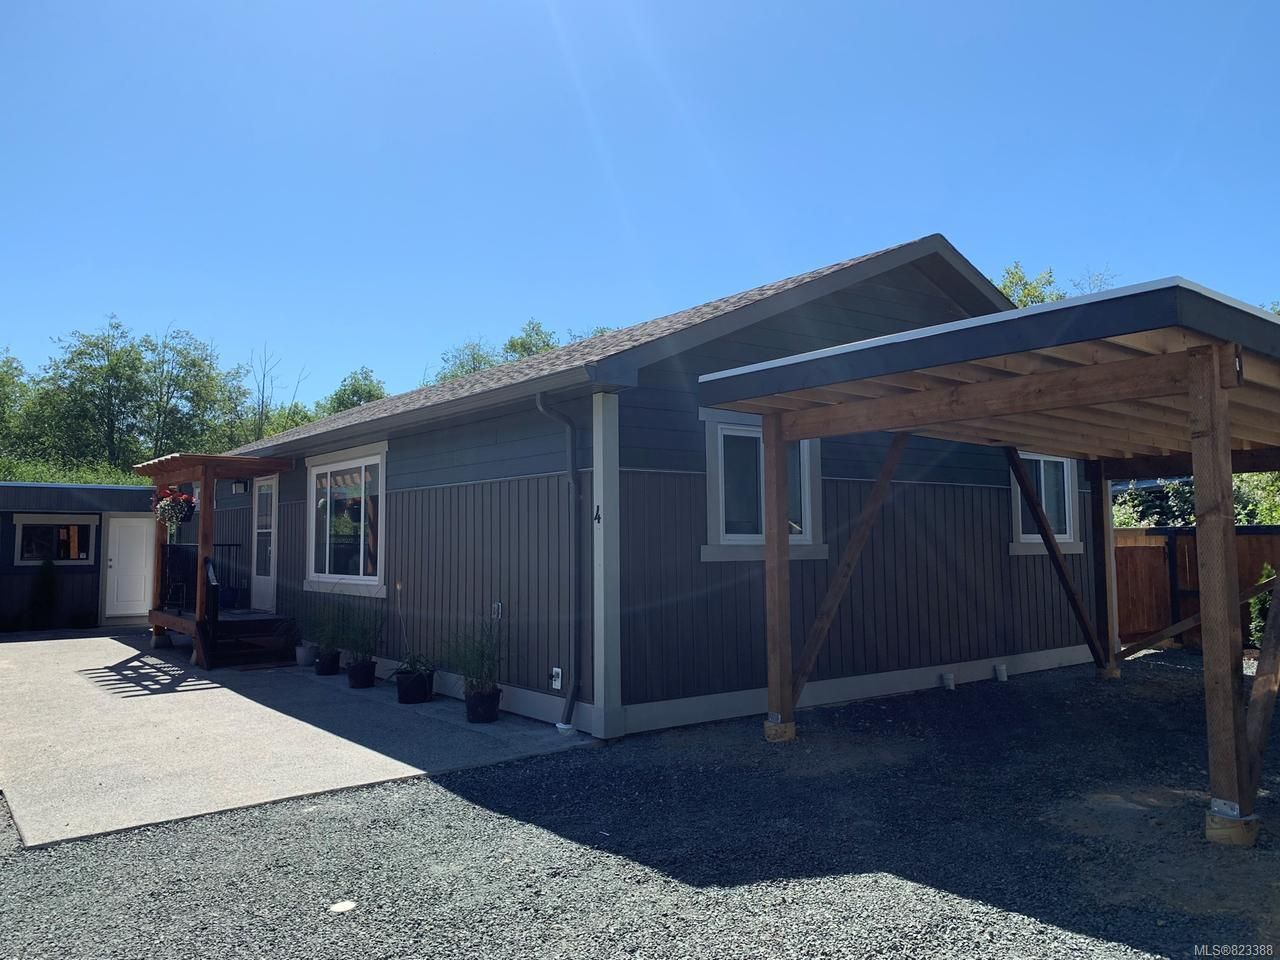 Main Photo: 4 1885 WILLIS ROAD in CAMPBELL RIVER: CR Campbell River West House for sale (Campbell River)  : MLS®# 823388